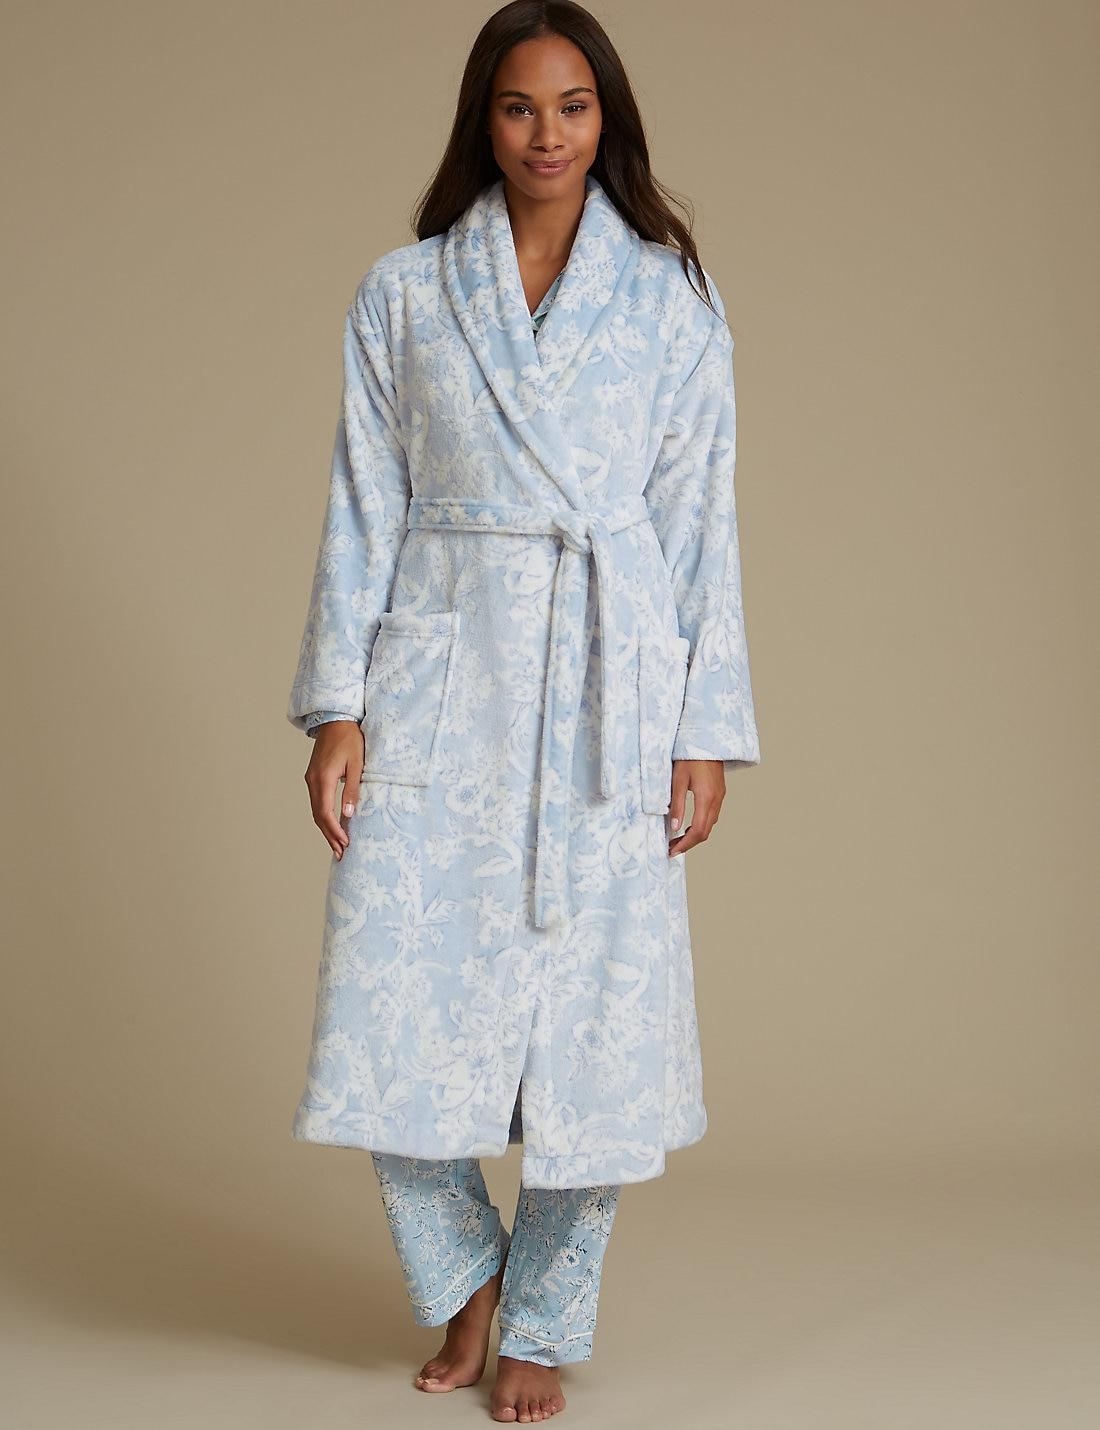 Luxury Dressing Gowns Marks And Spencer Ornament - Wedding and ...